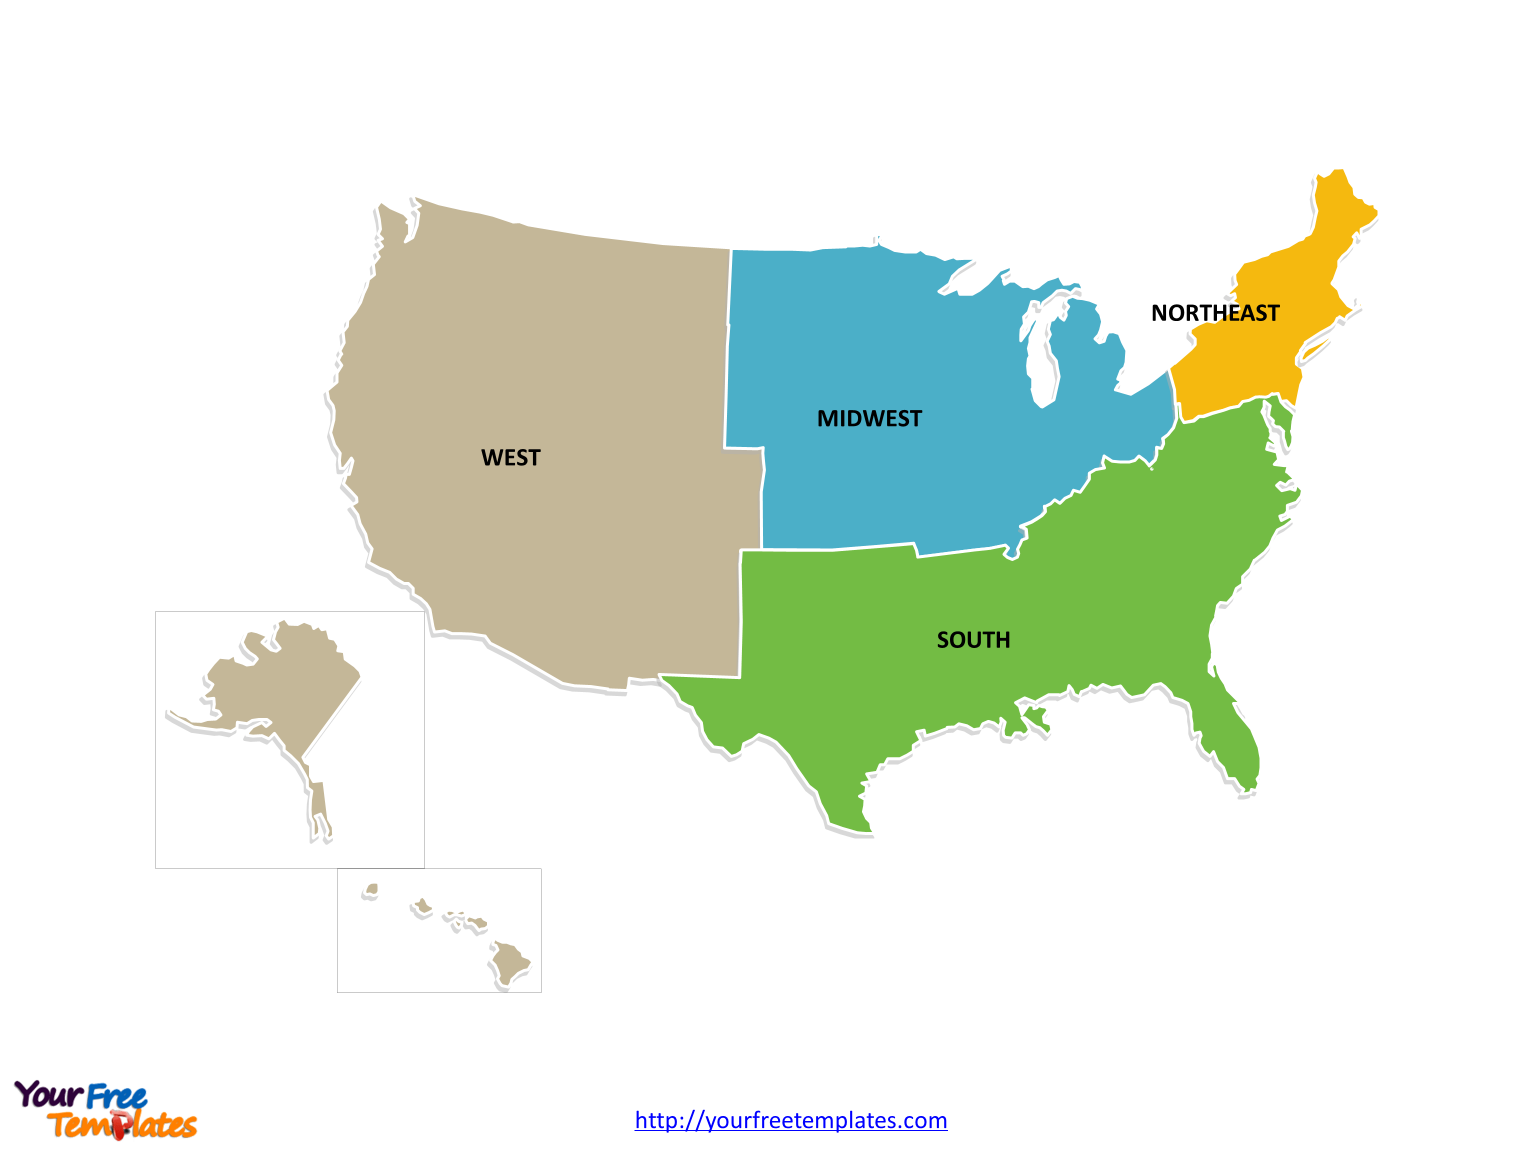 Free USA Region PowerPoint Map Free PowerPoint Templates - Midwest usa map